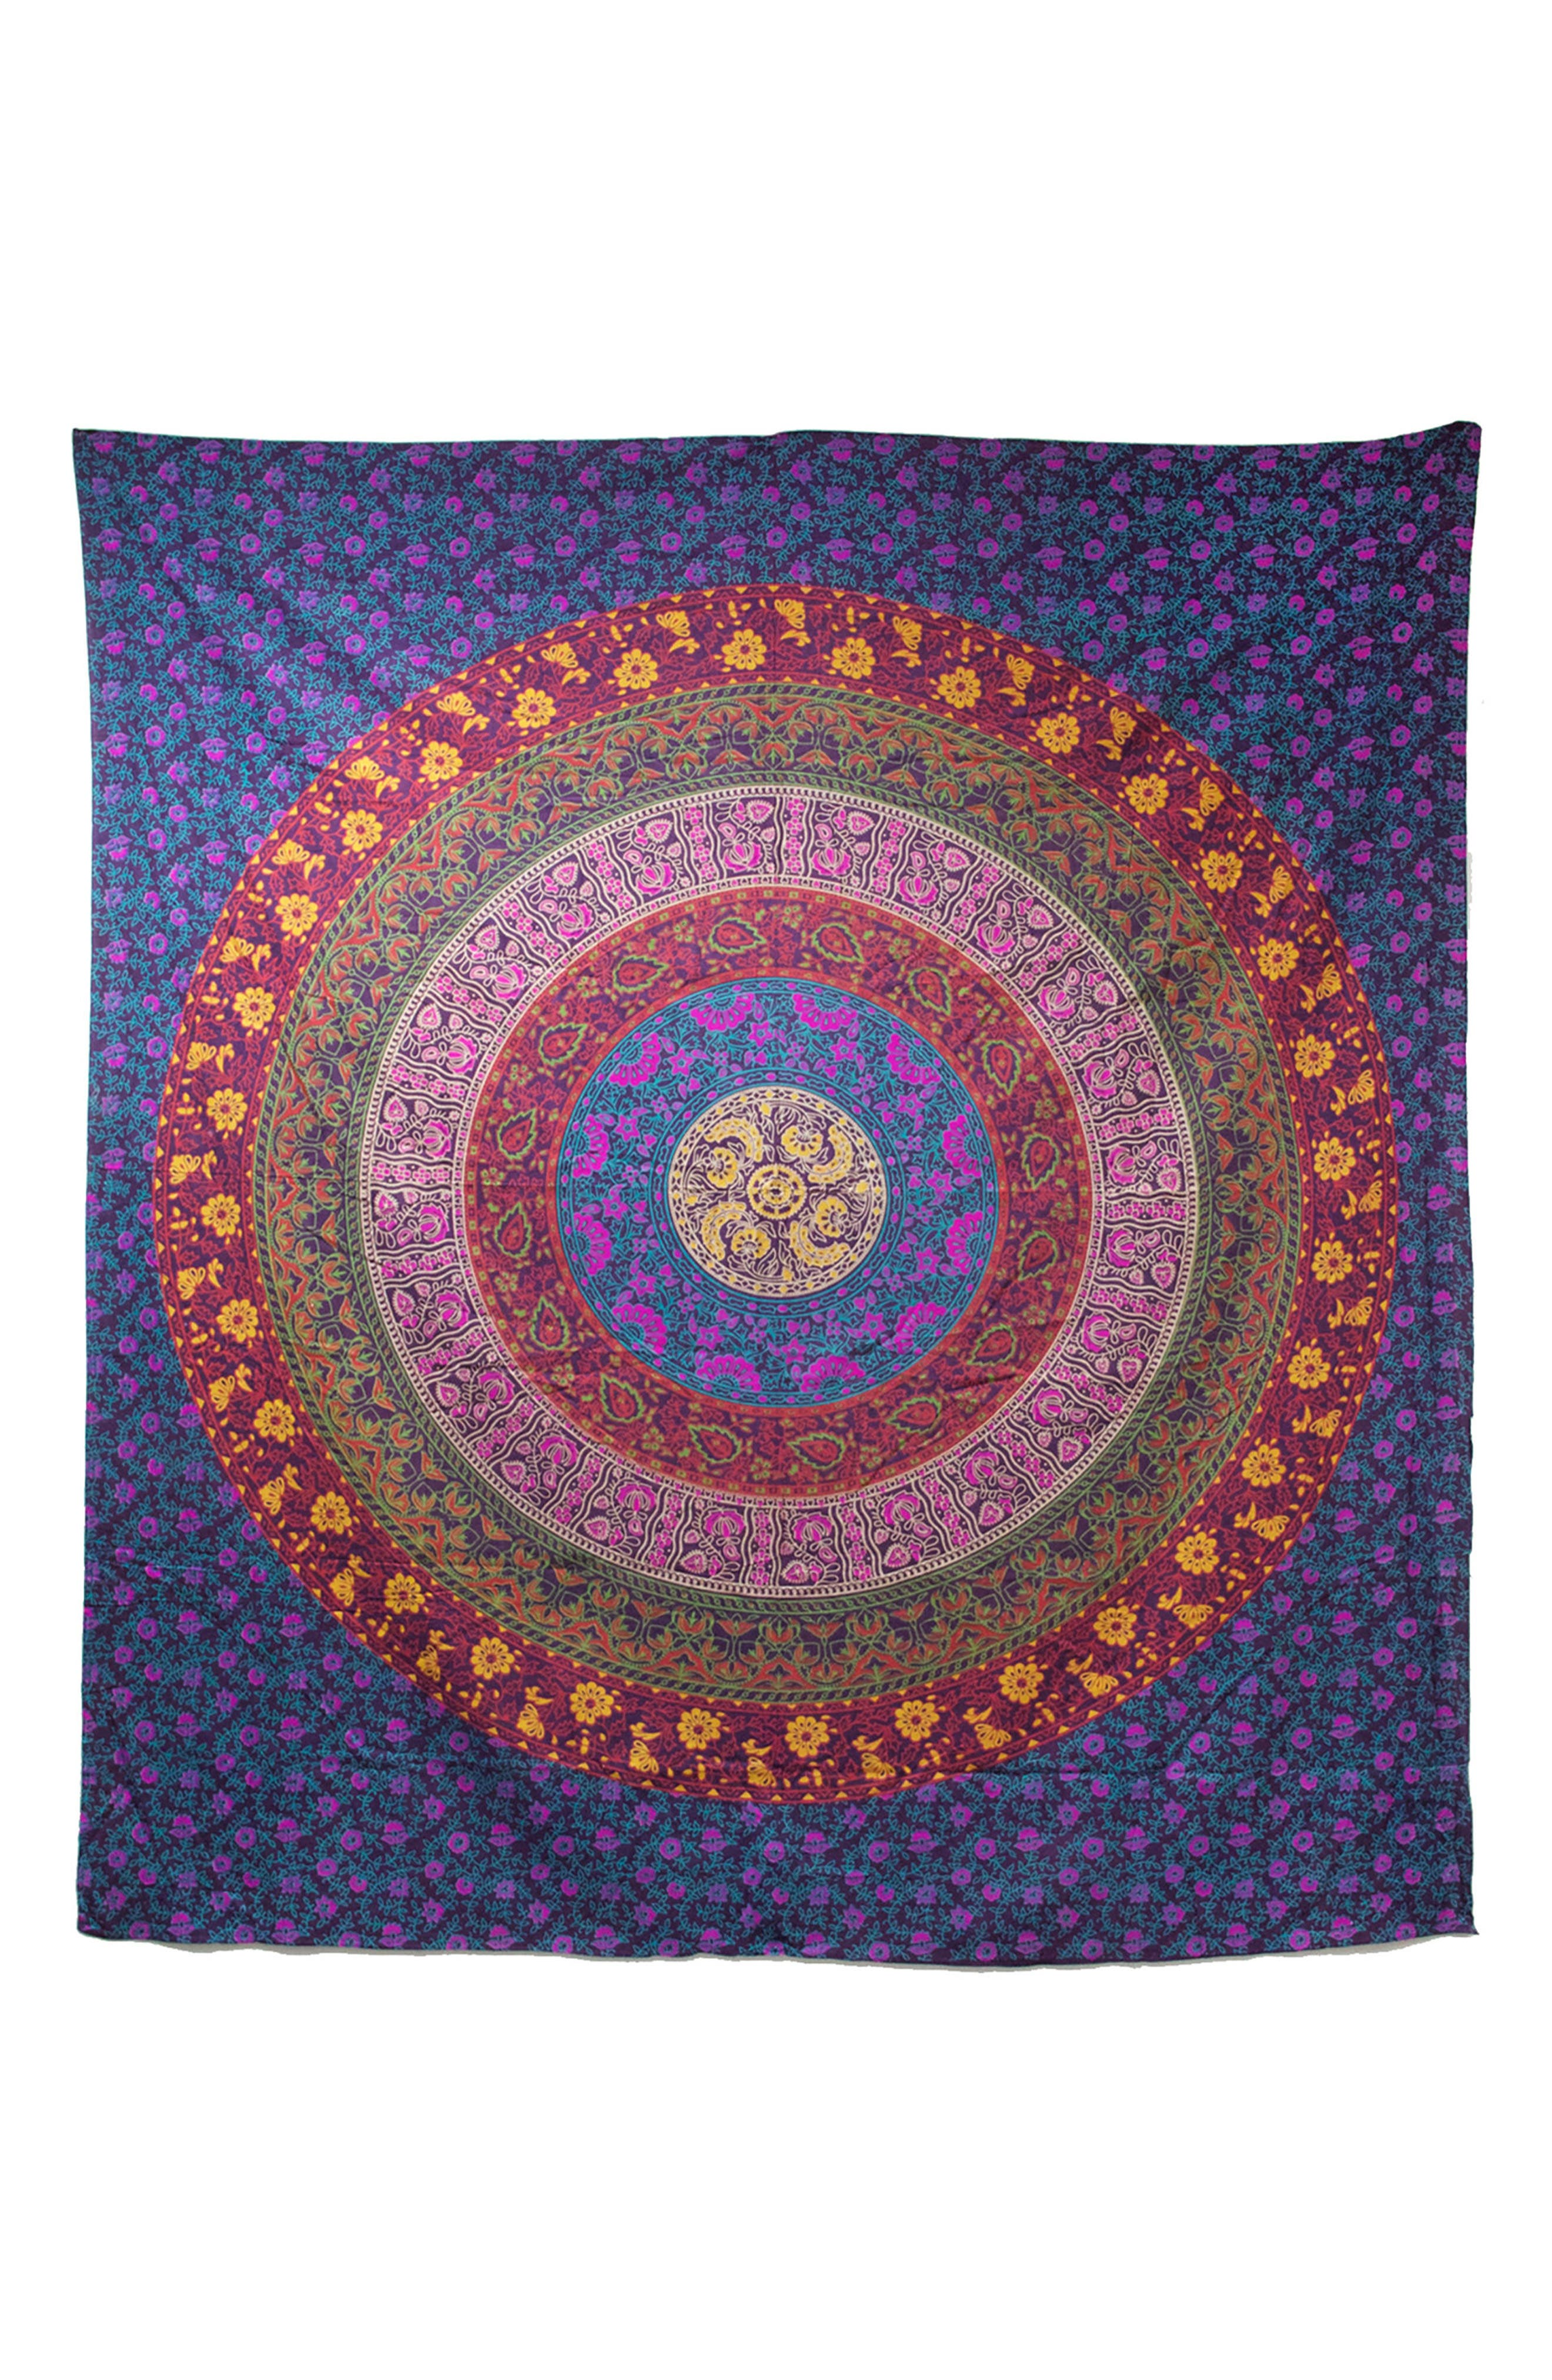 Wallpops Meher Wall Tapestry